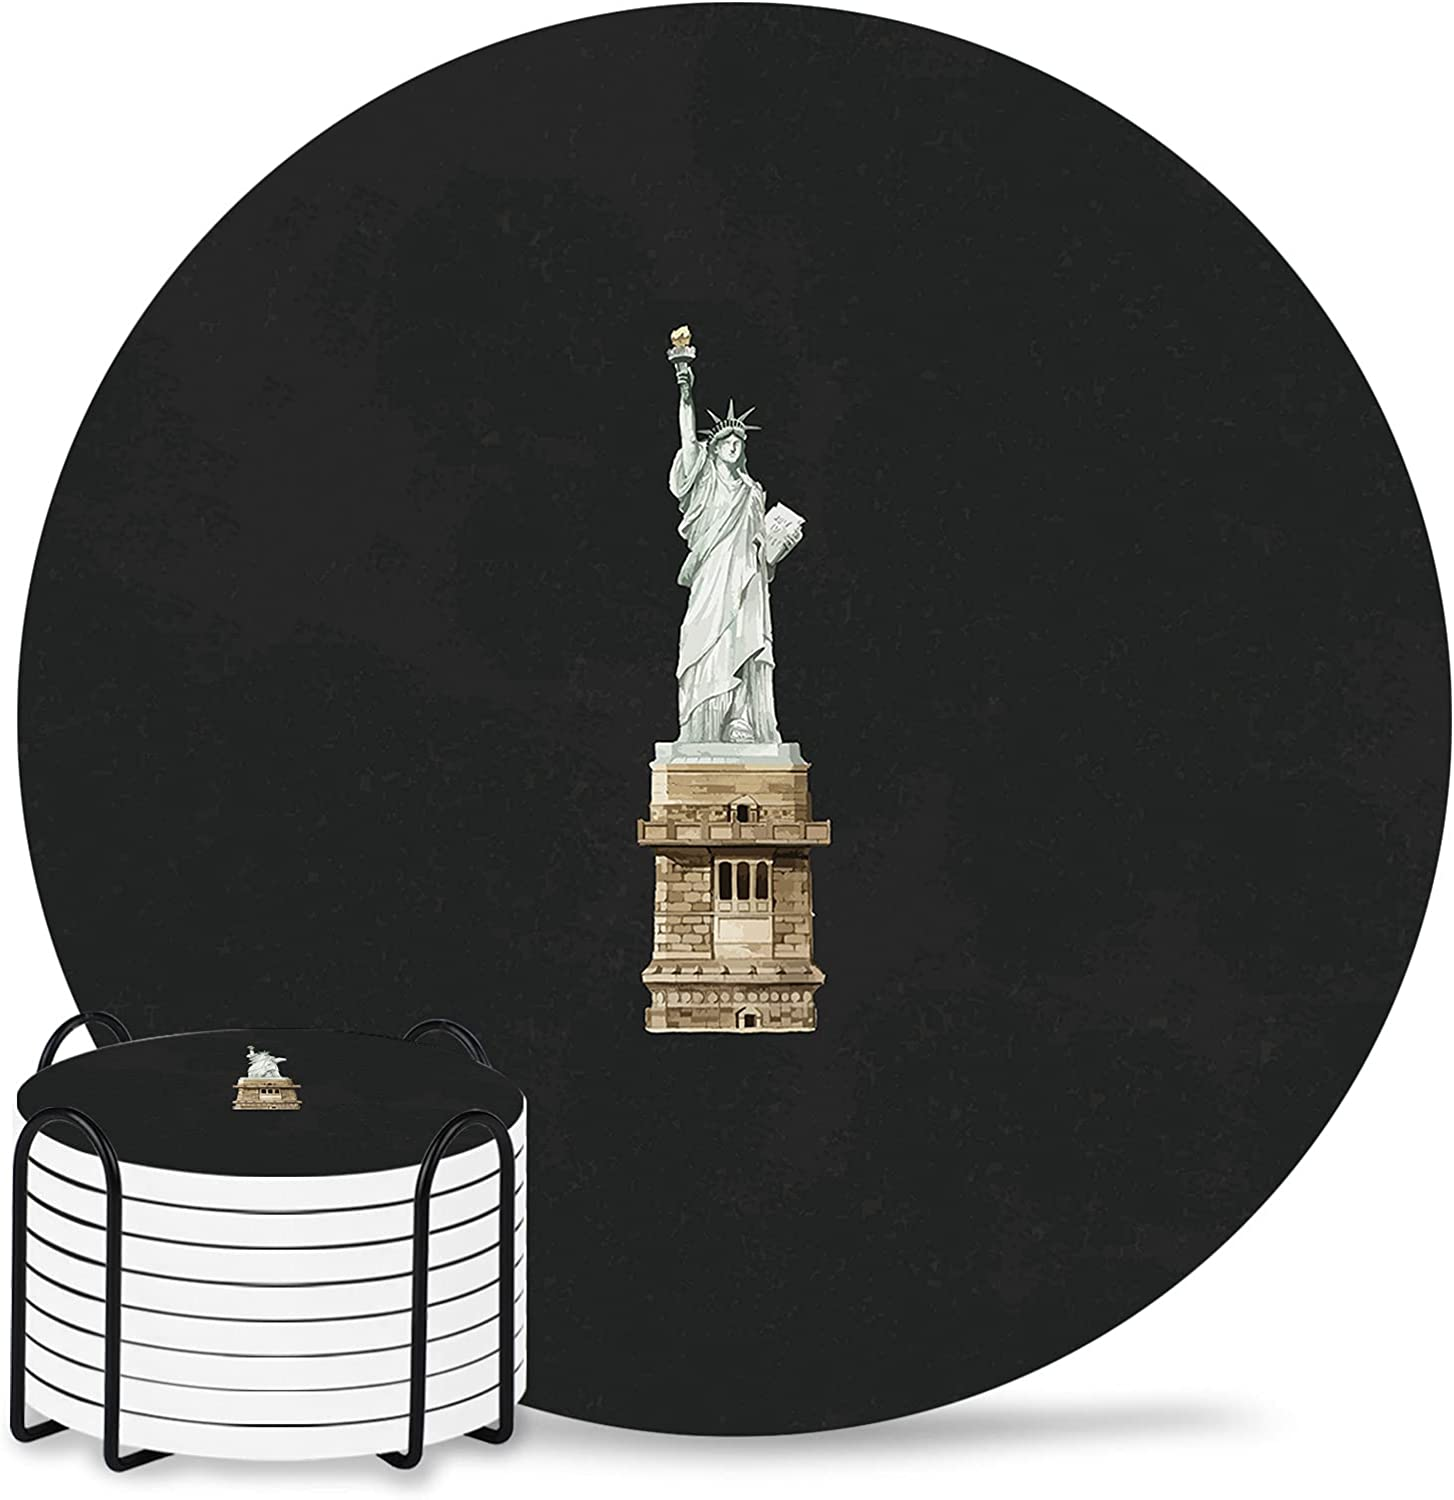 New York Drink Coasters 8-Piece Sales results No. 1 Holder Direct store with Absorbe Ceramic Set